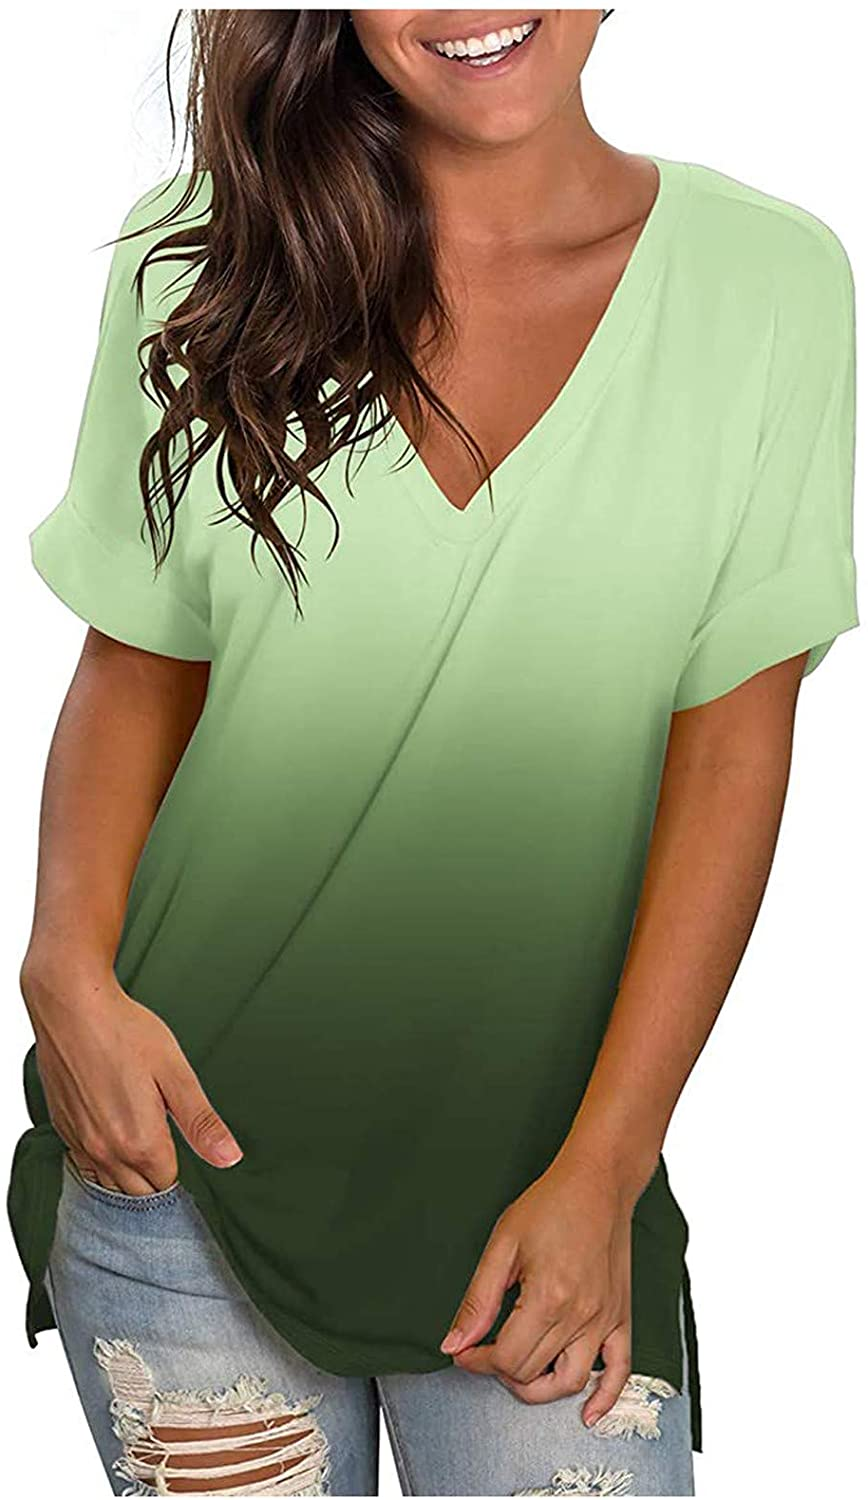 Summer Tops for Women Short Sleeve, Women's V Neck Short Sleeve T Shirts with Pocket Drop Tail Hem Relaxed Fit Tees